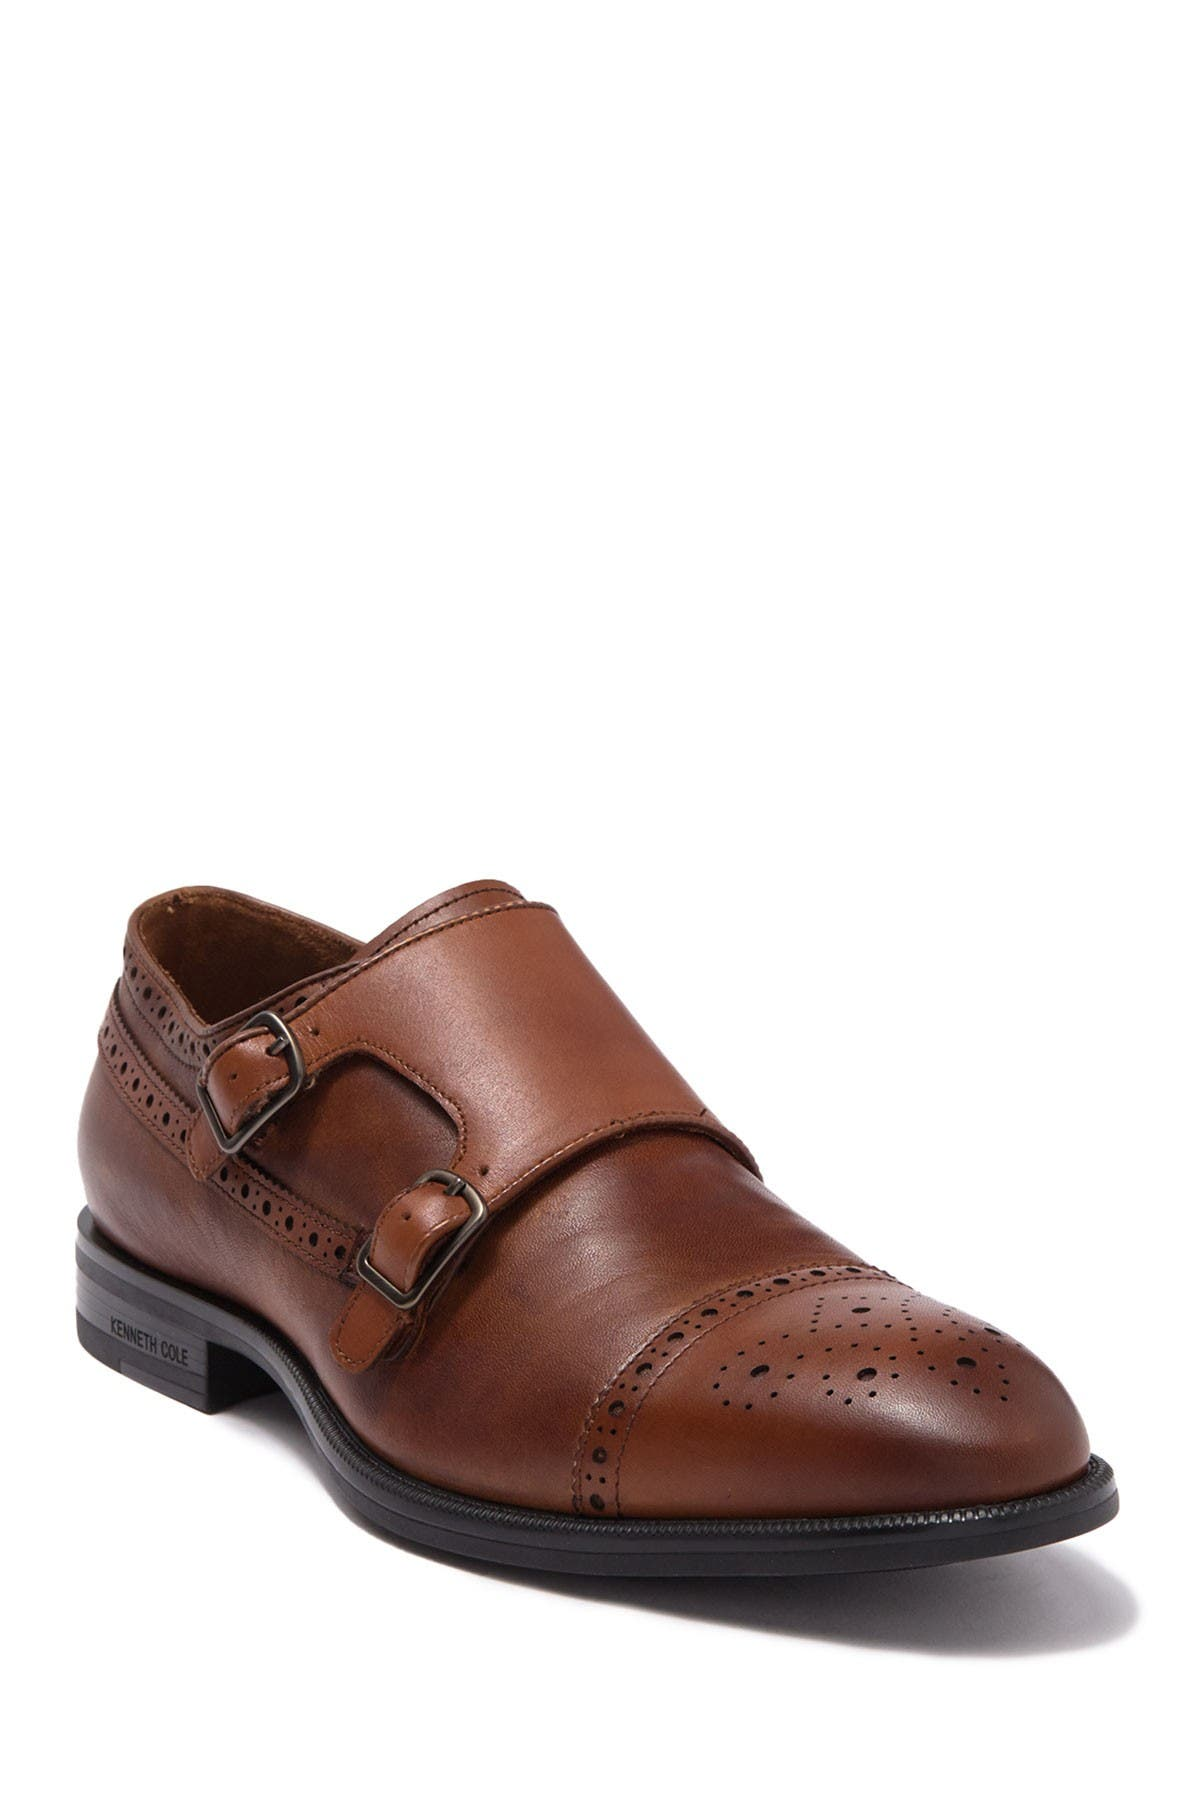 Image of Kenneth Cole New York Futurepod Double Monk Strap Loafer